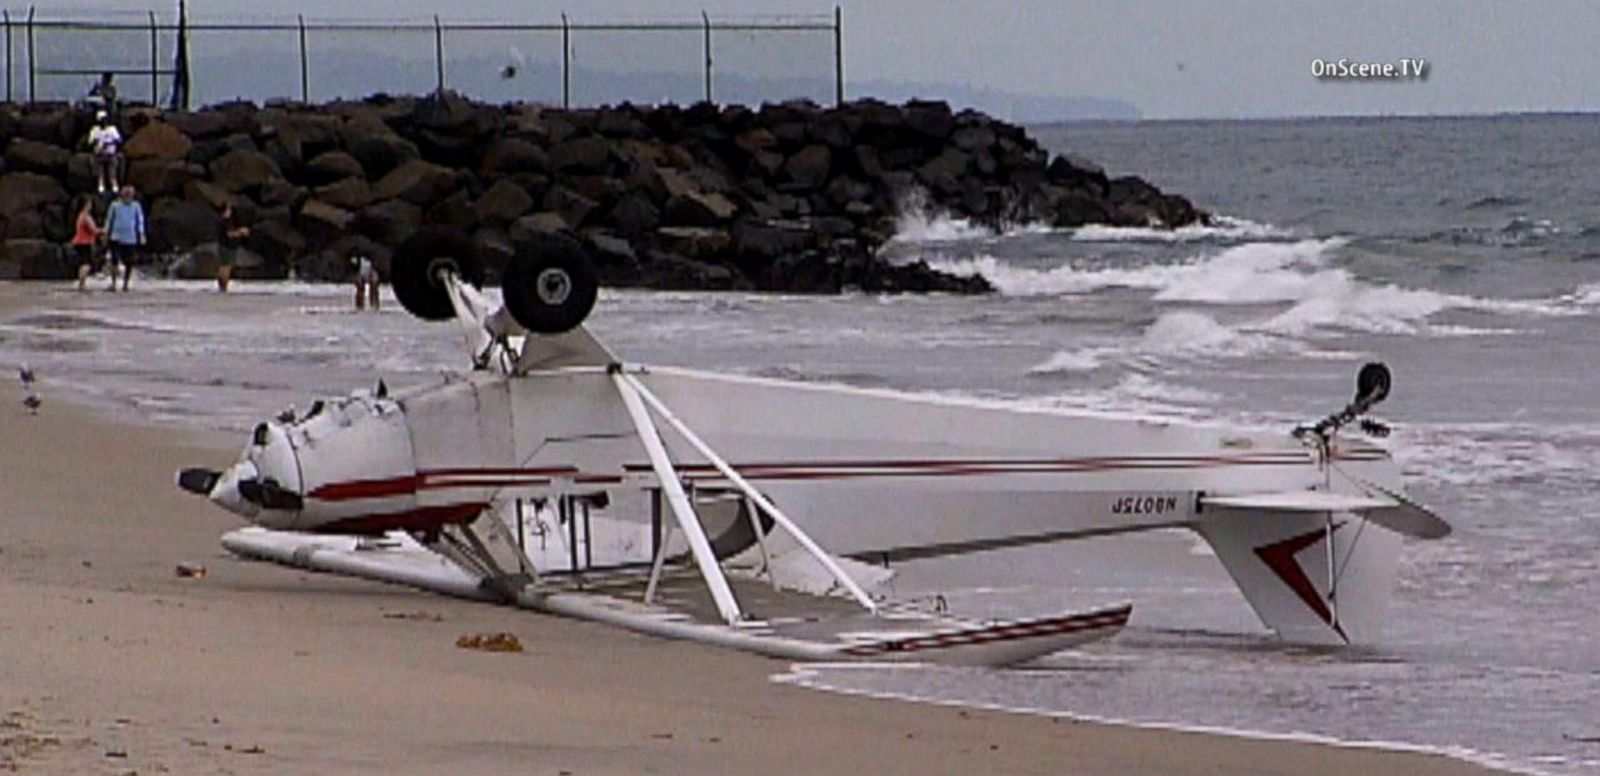 VIDEO: 12-Year-Old Injured as Single-Engine Plane Crash Lands on California Beach